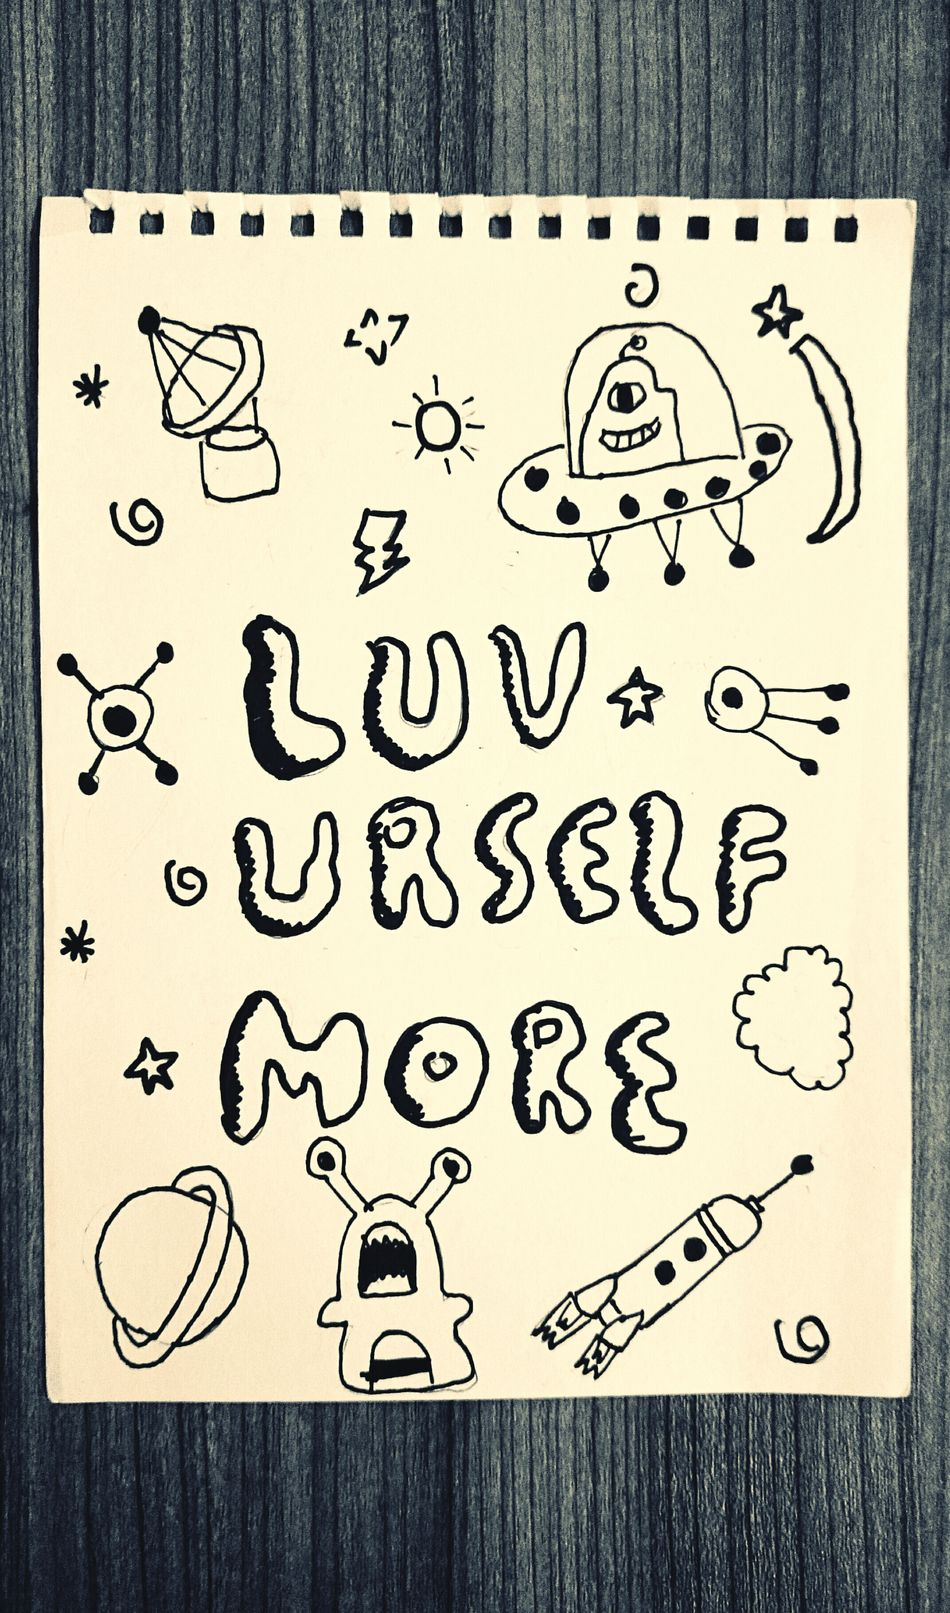 A self-reminder drawn and given by a good friend who is an aspiring doodle artist. I was told to read it everyday. Thoughts And Musings Simple But Meaningful Doodle Art Aliens Friendship My Student Life The Week On EyeEm Showcase: January Check This Out